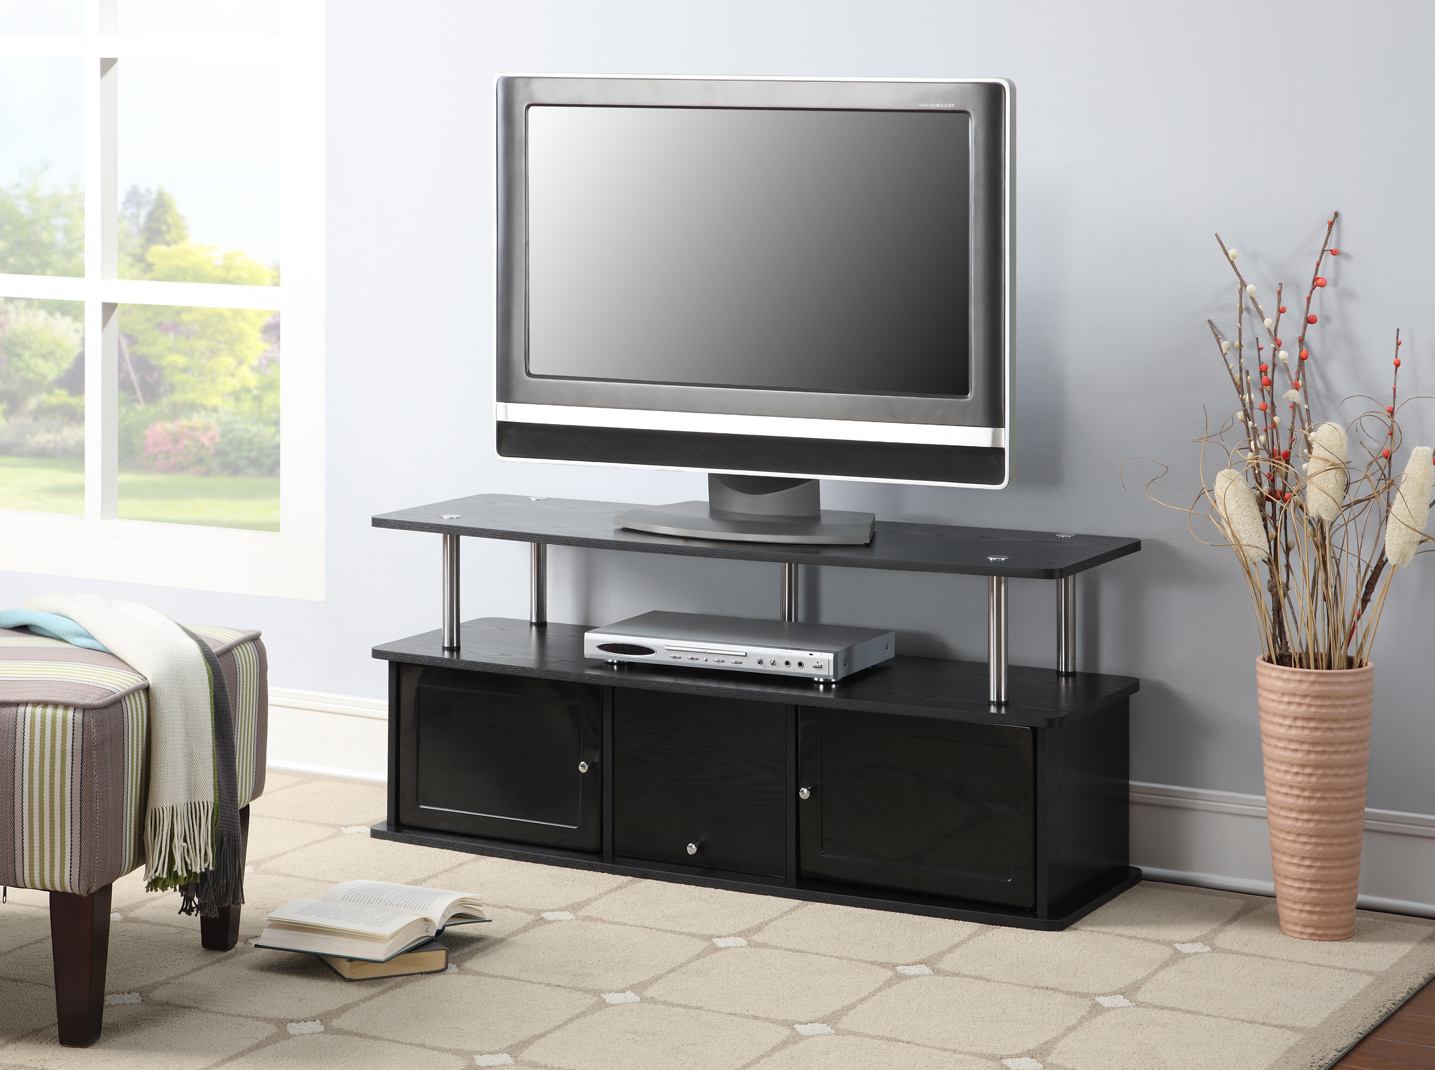 """Caleah Tv Stands For Tvs Up To 50"""" Regarding Fashionable Convenience Concepts Designs2go Cherry Tv Stand With  (View 2 of 25)"""